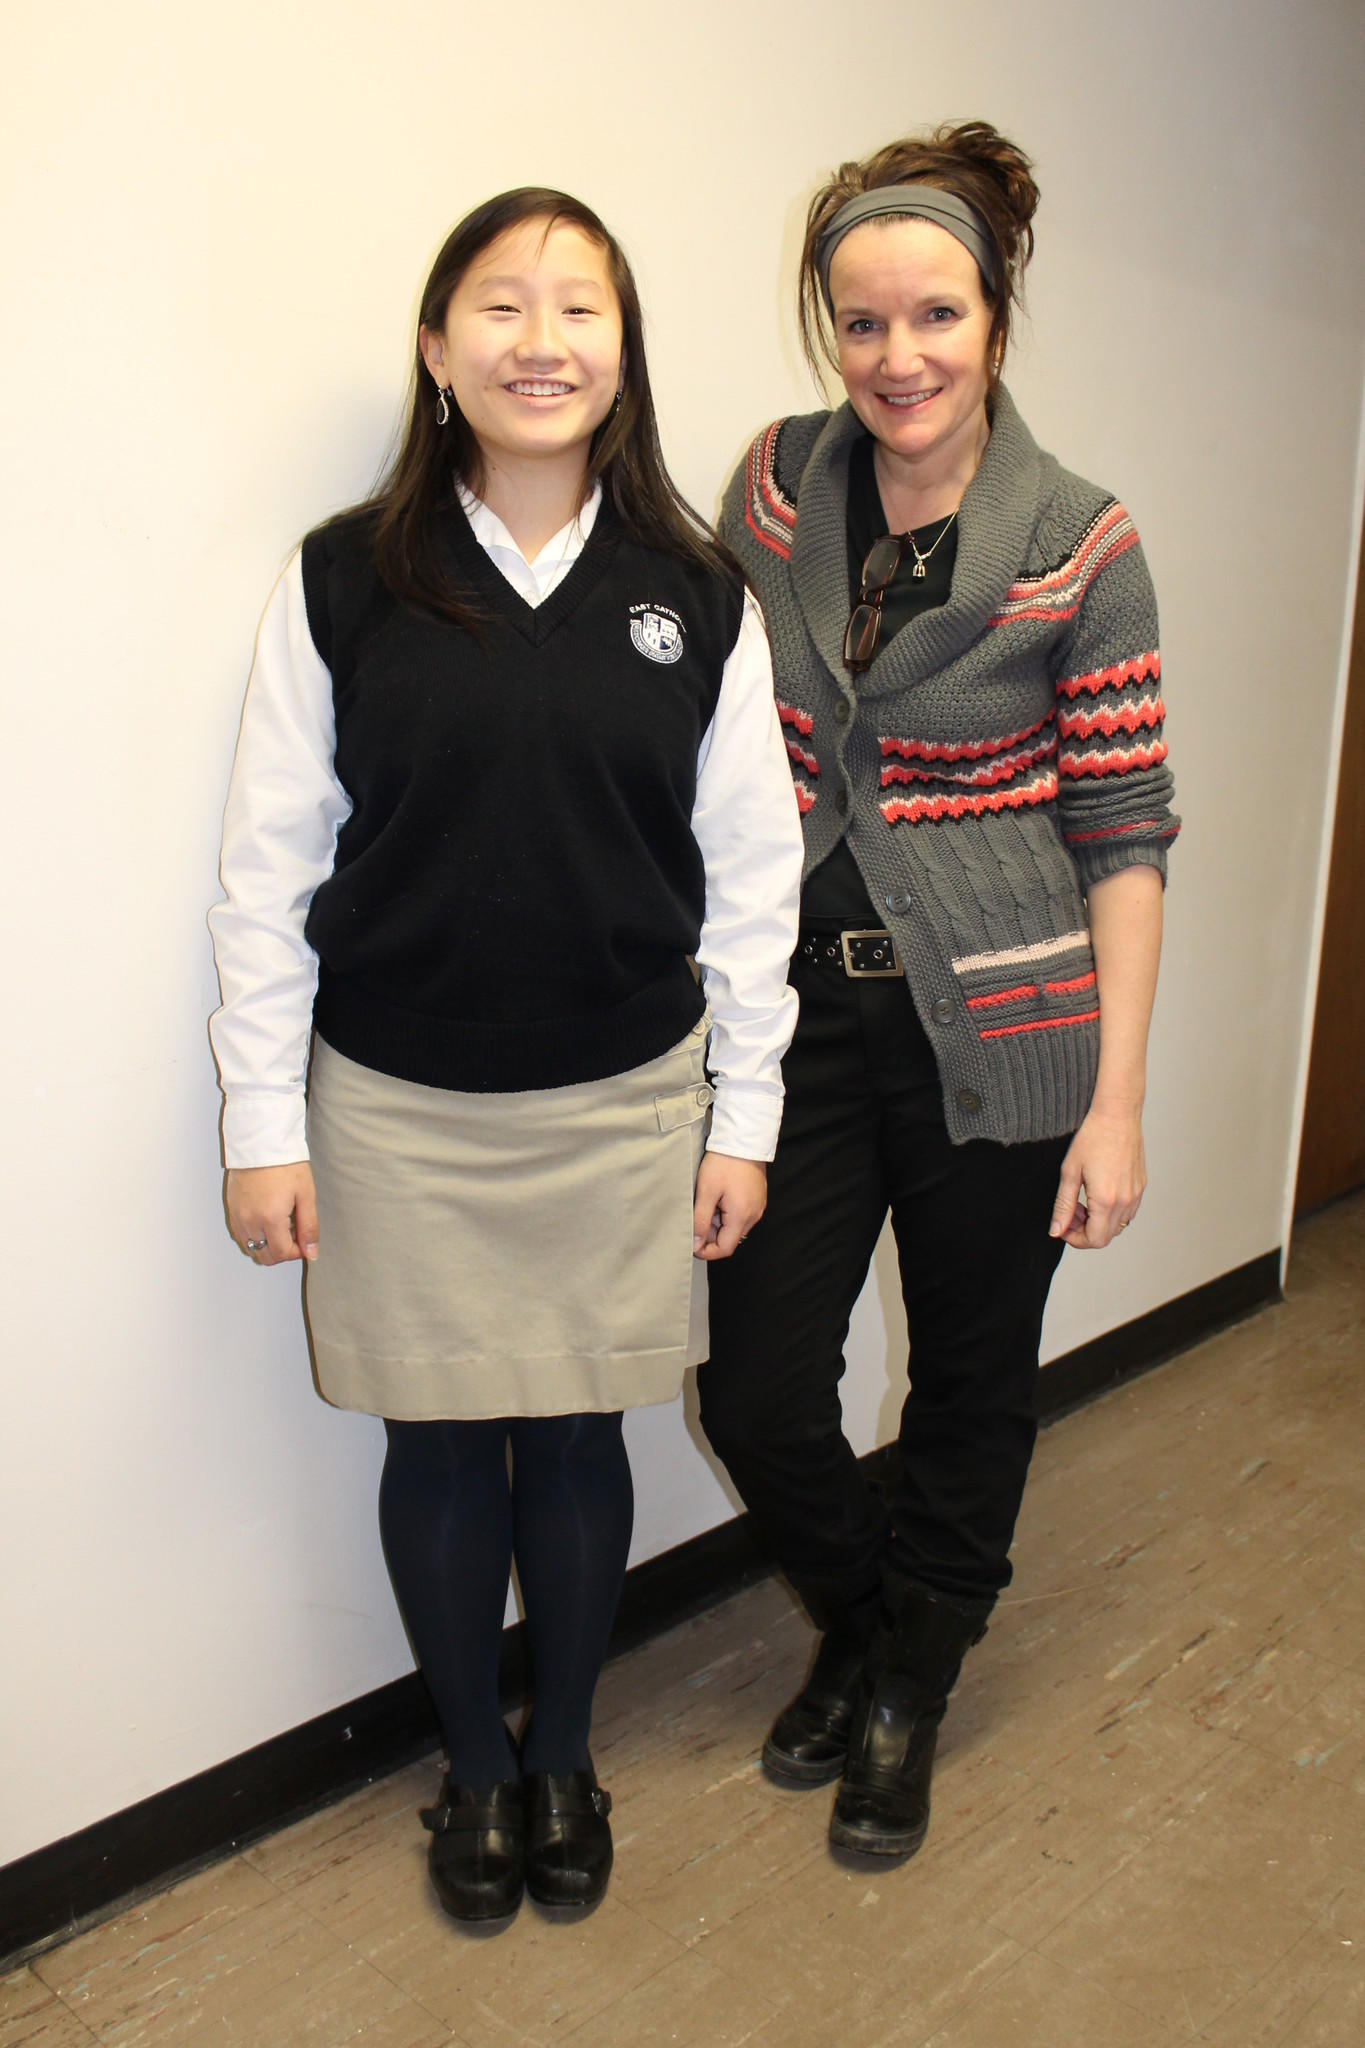 From left to right: East Catholic Junior Grace Mazzarella and ECHS Art Teacher Judy Knight Landry '85.